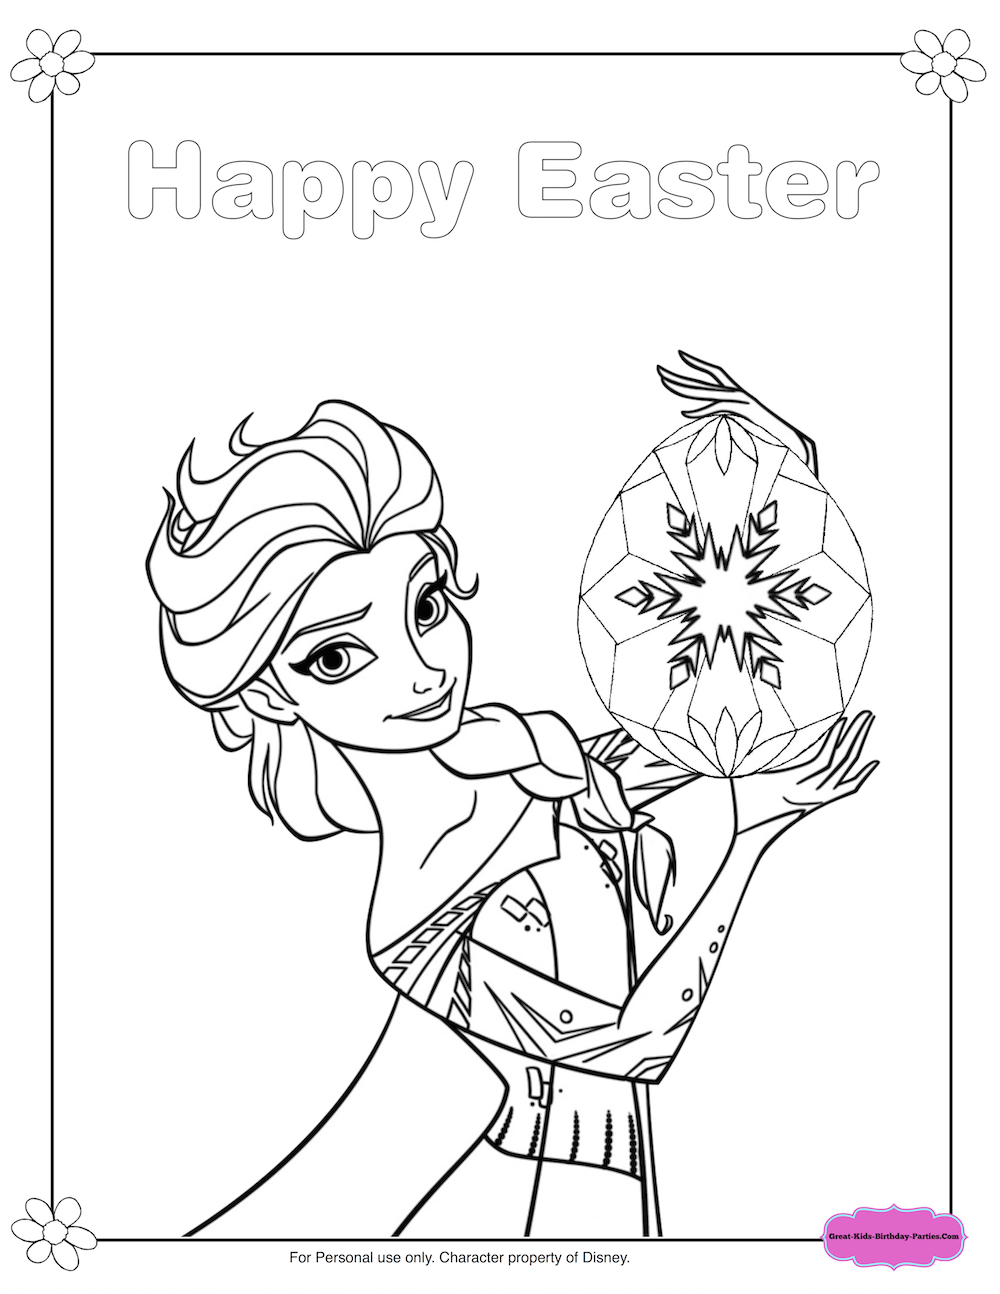 Olaf coloring pages only coloring pages - Frozen Elsa And Olaf Easter Coloring Pages Fun Easter Printables For Kids